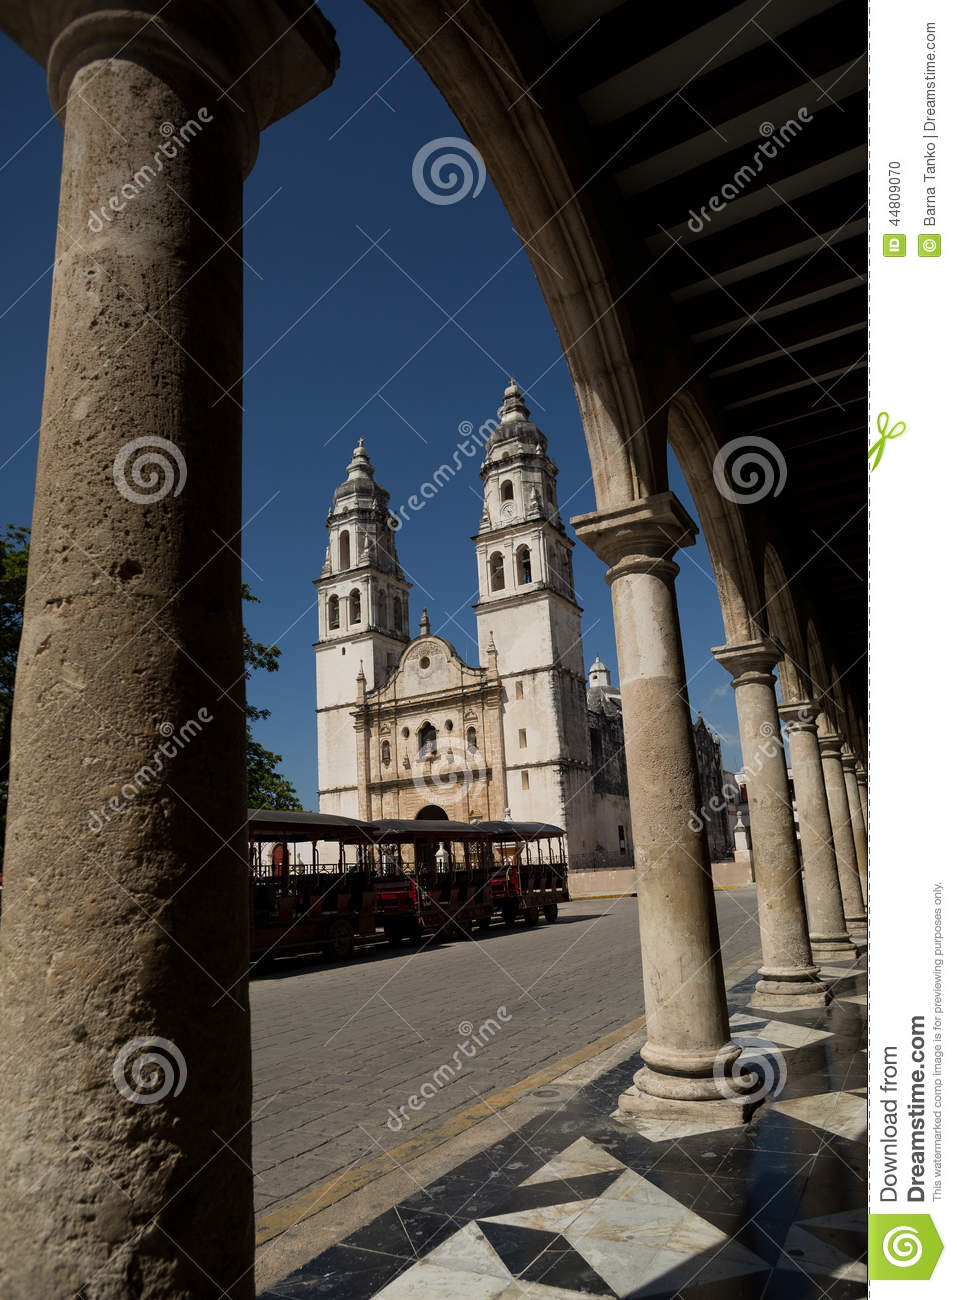 Travel guide to Campeche, Mexico   FinnsAway travel blog   Campeche City Monuments